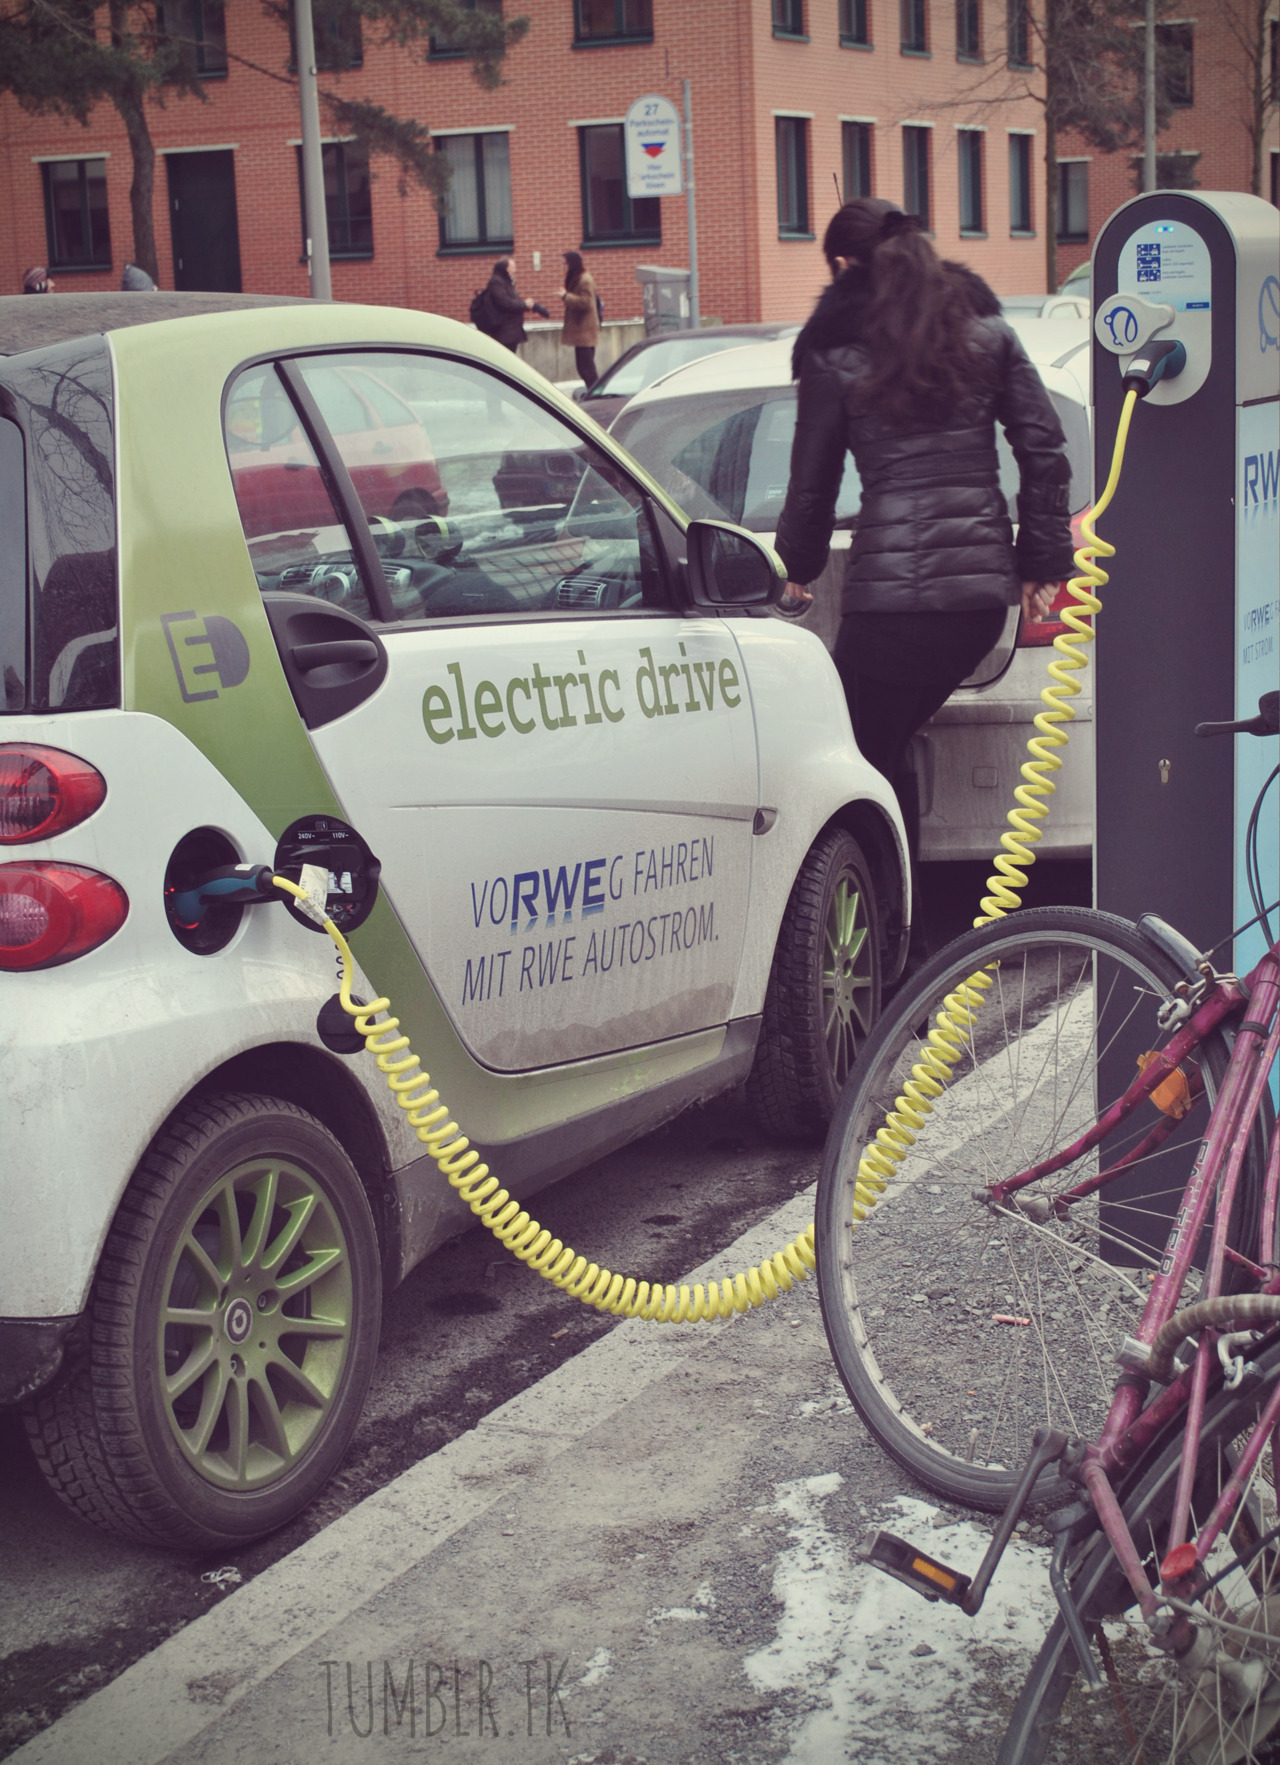 The new type of refueling, after having exchanged a bicycle to an electric car…